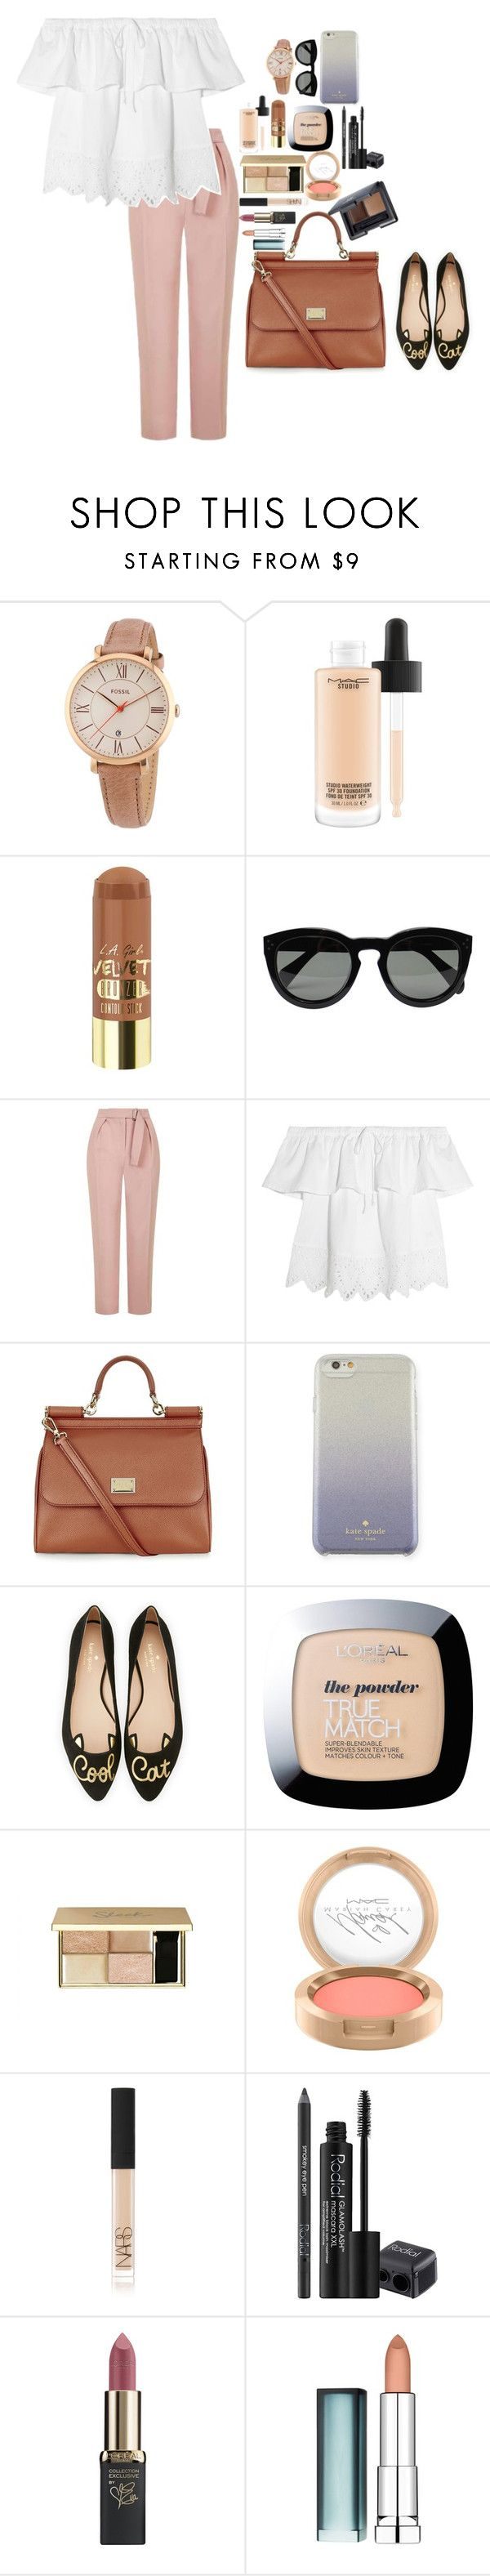 """Untitled #3220"" by veronicaptr ❤ liked on Polyvore featuring FOSSIL, MAC Cosmetics, CÉLINE, Topshop, Madewell, Dolce&Gabbana, Kate Spade, L'Oréal Paris, NARS Cosmetics and Rodial"